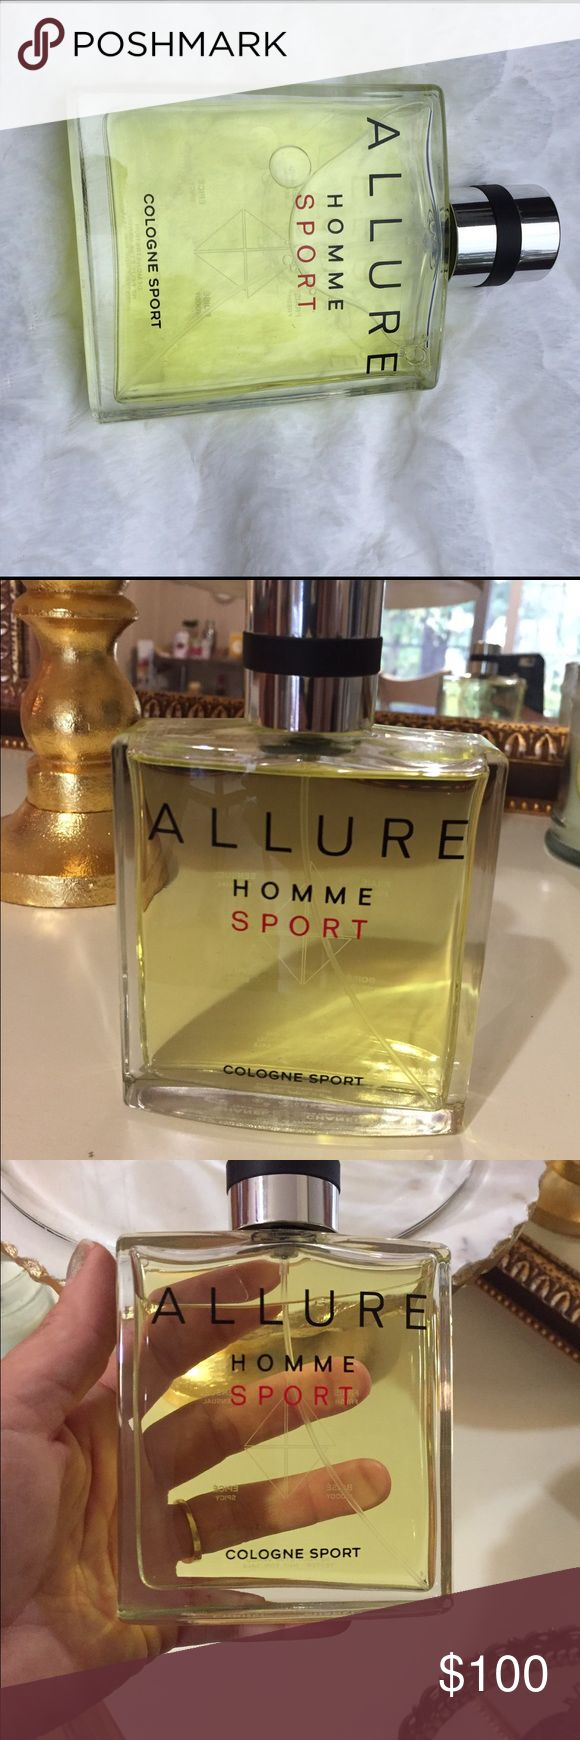 Chanel Allure Homme Sport Cologne 5 oz Authentic This is a new Tester bottle of full size 150ml / 5oz. Chanel Allure Sport Cologne for men. My fiance got it as a gift. Selling to help pay for our wedding lol. It is Guaranteed Authentic. CHANEL Other